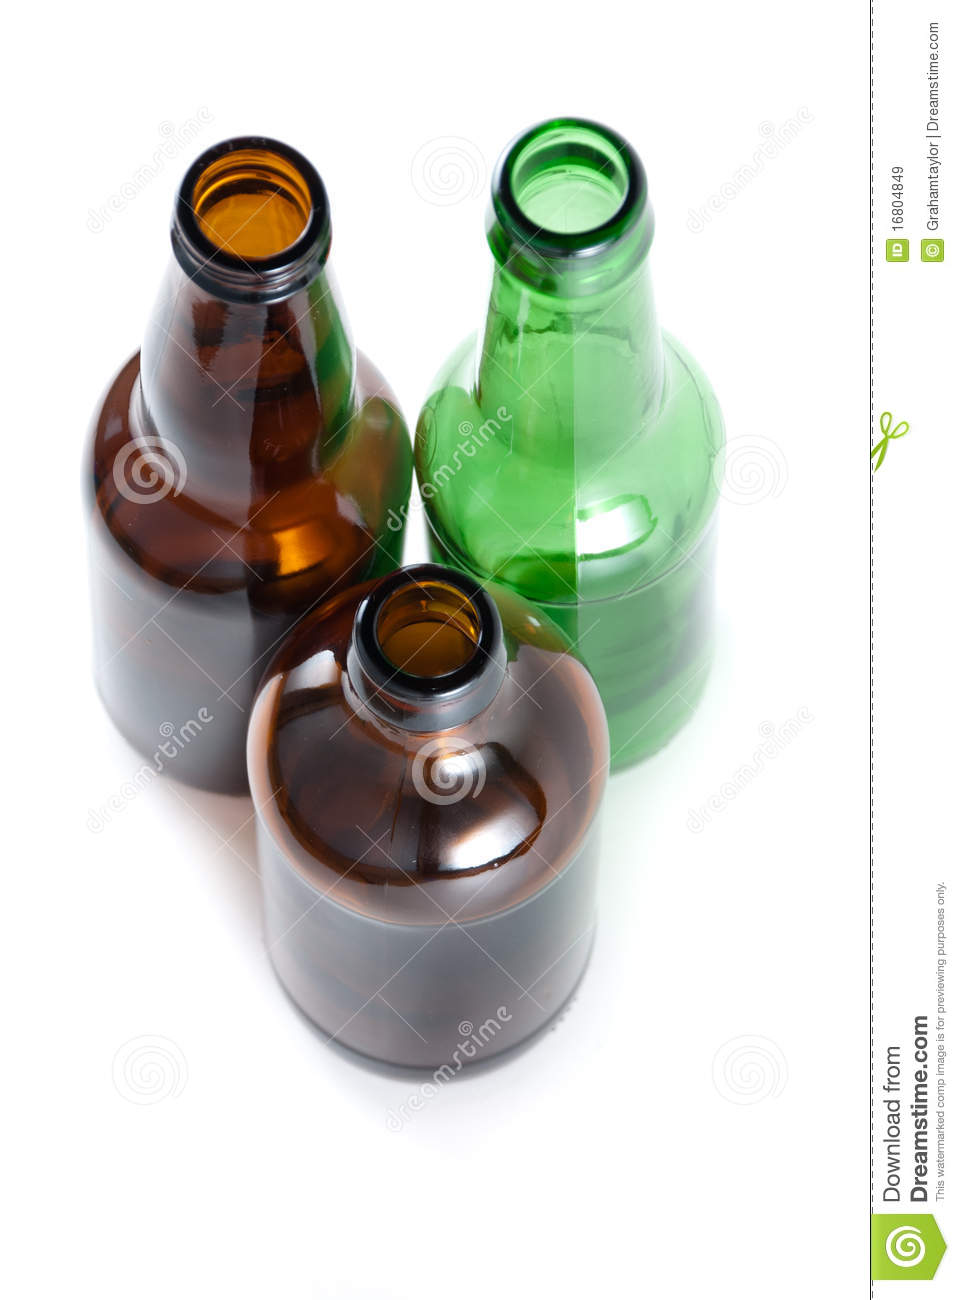 Three Emplty Beer Bottles On Isolated Backround  Stock Image - Image